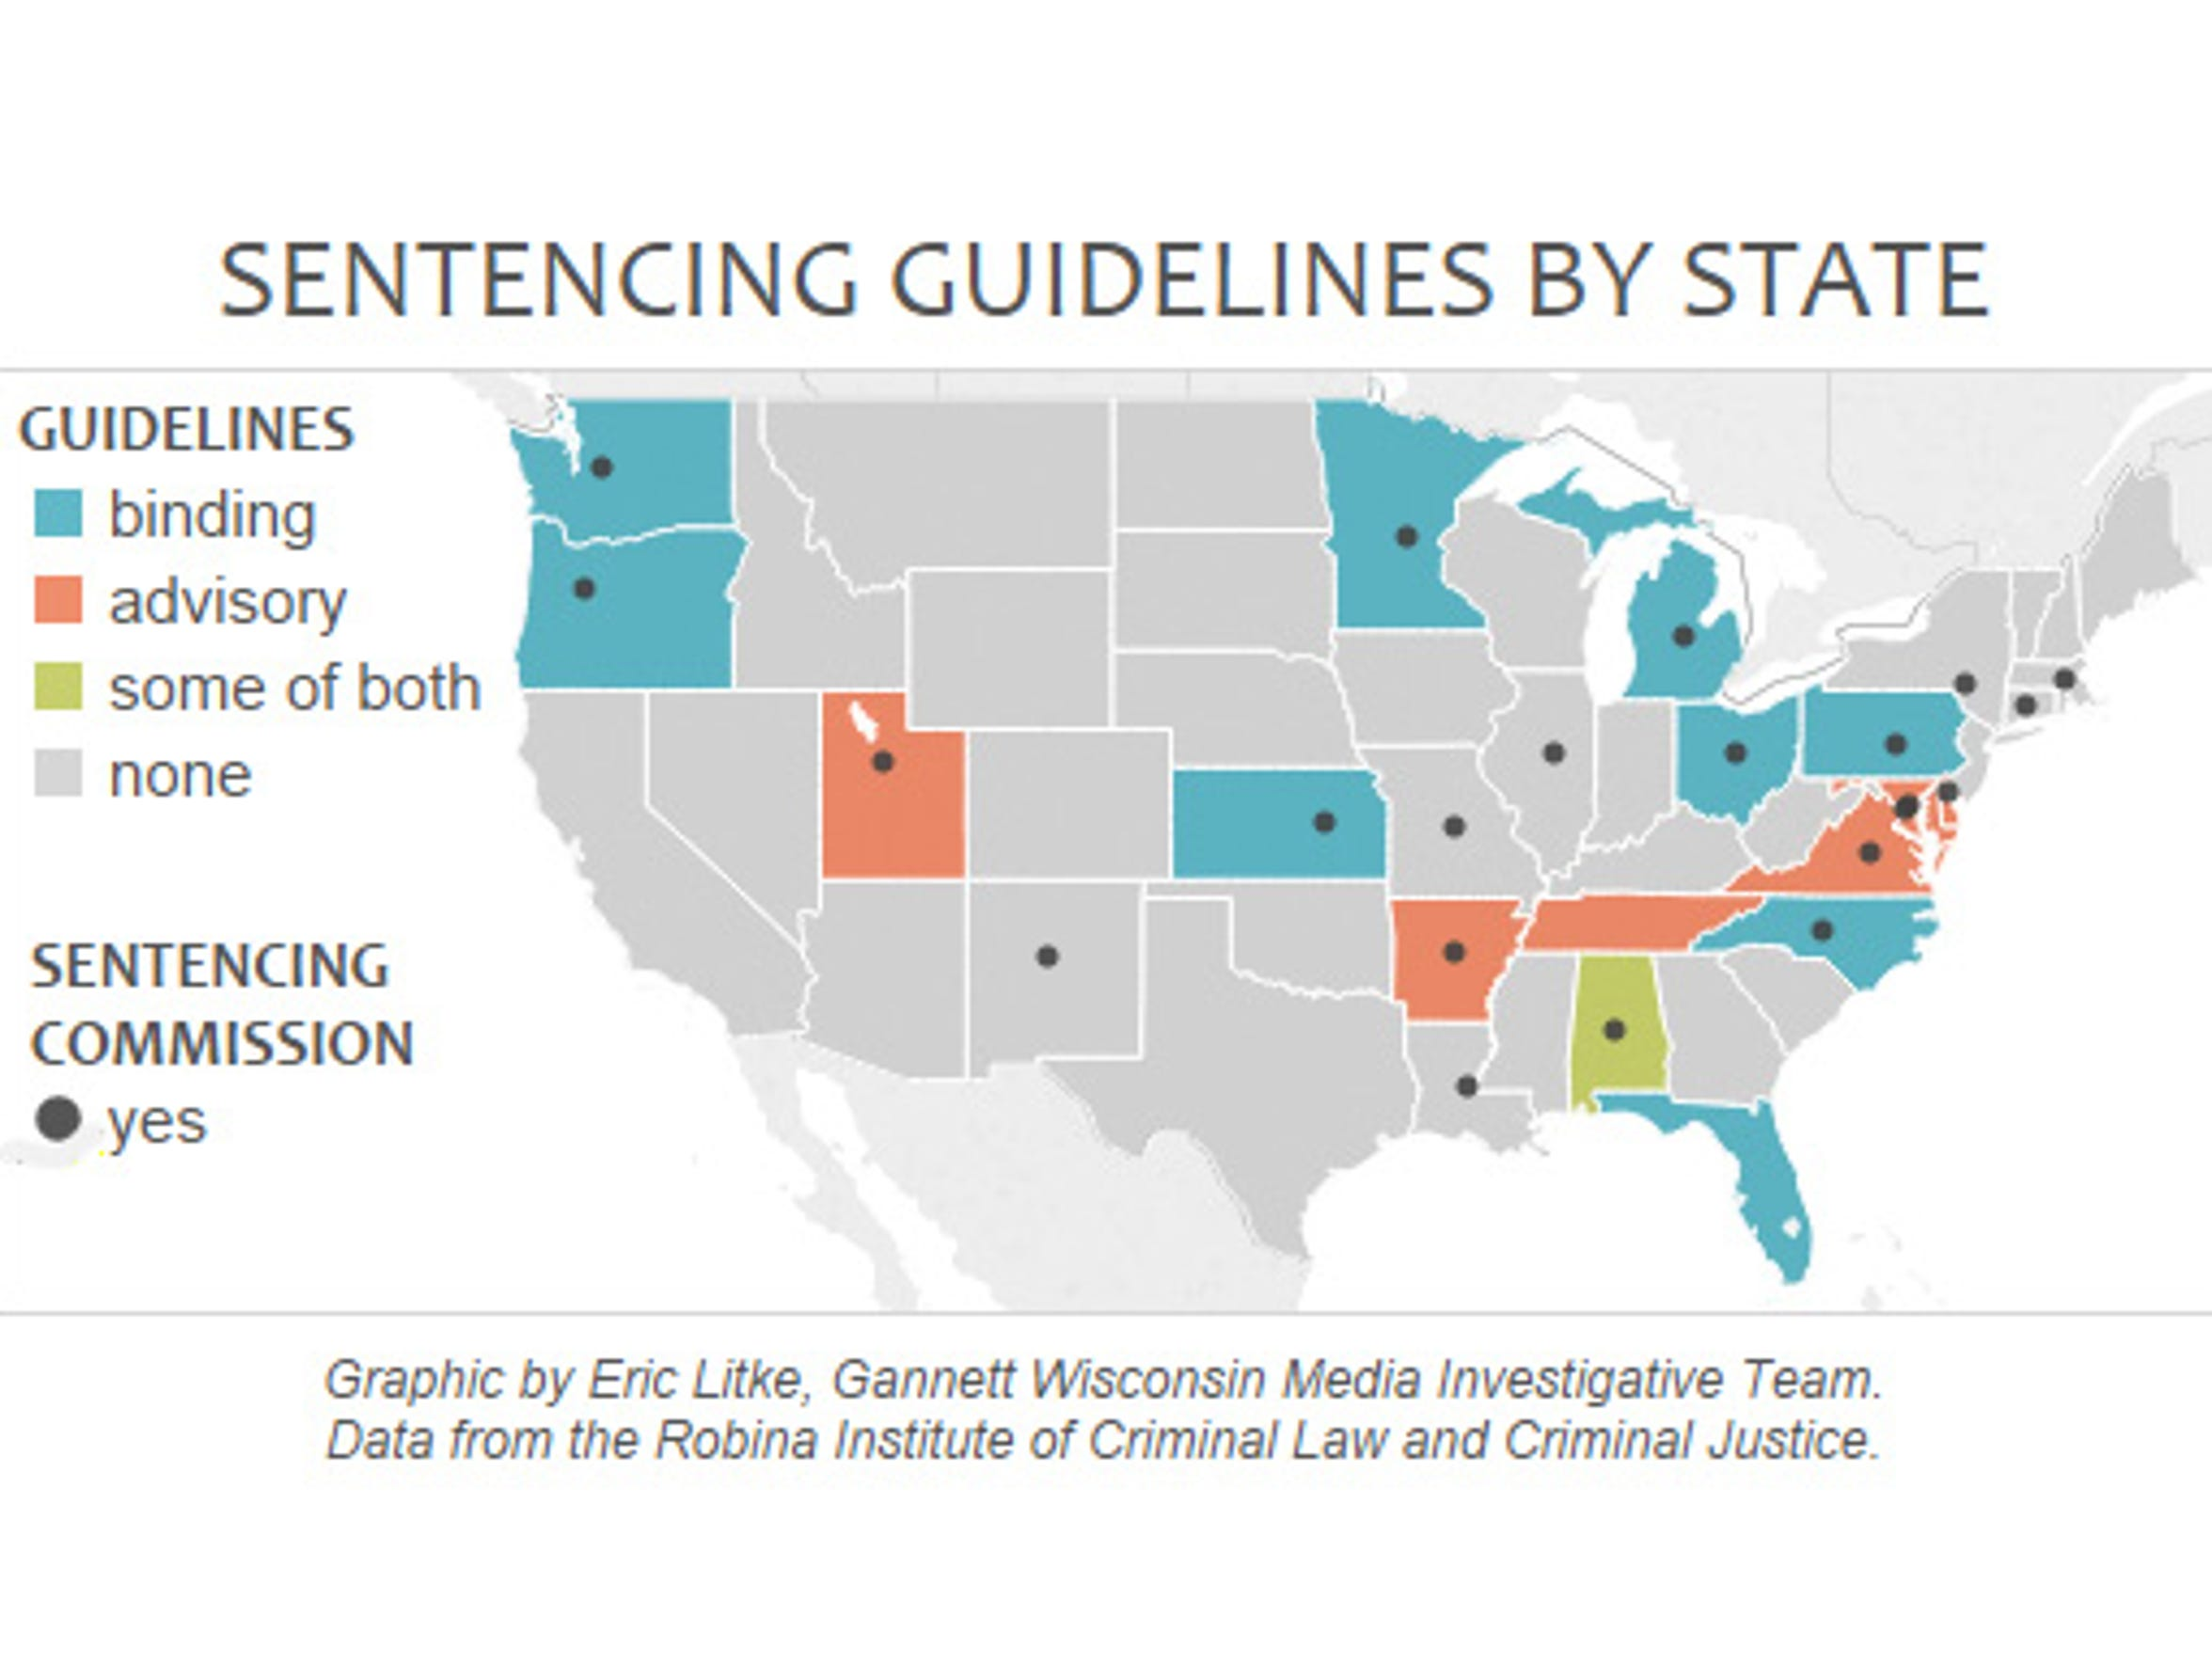 Sentencing guidelines by state